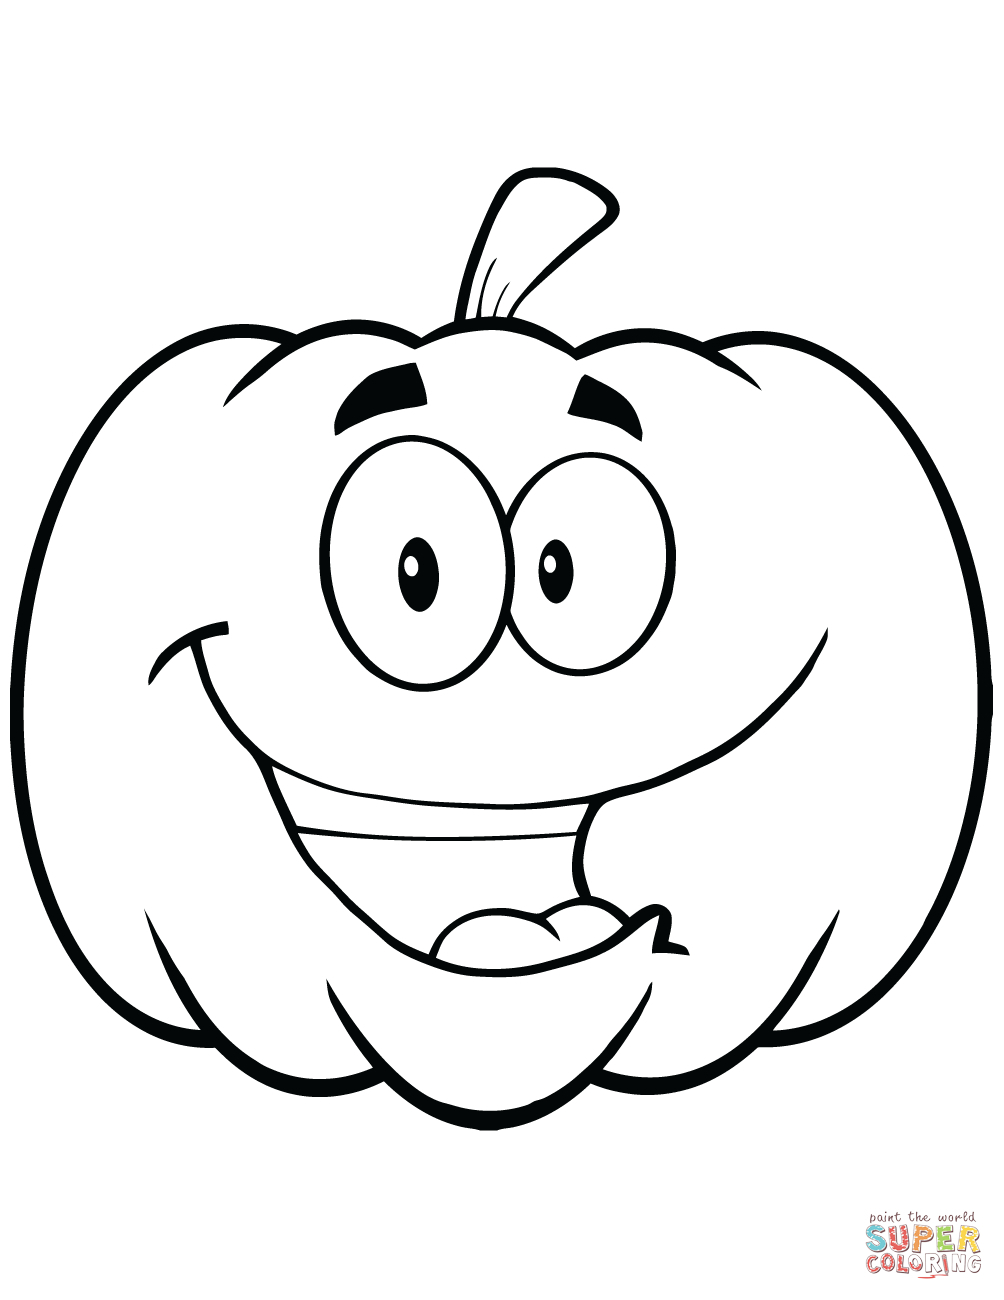 Printable Pumpkin Coloring Pages Free Printable Pumpkin Coloring Pages Cartoon Halloween Pumpkin